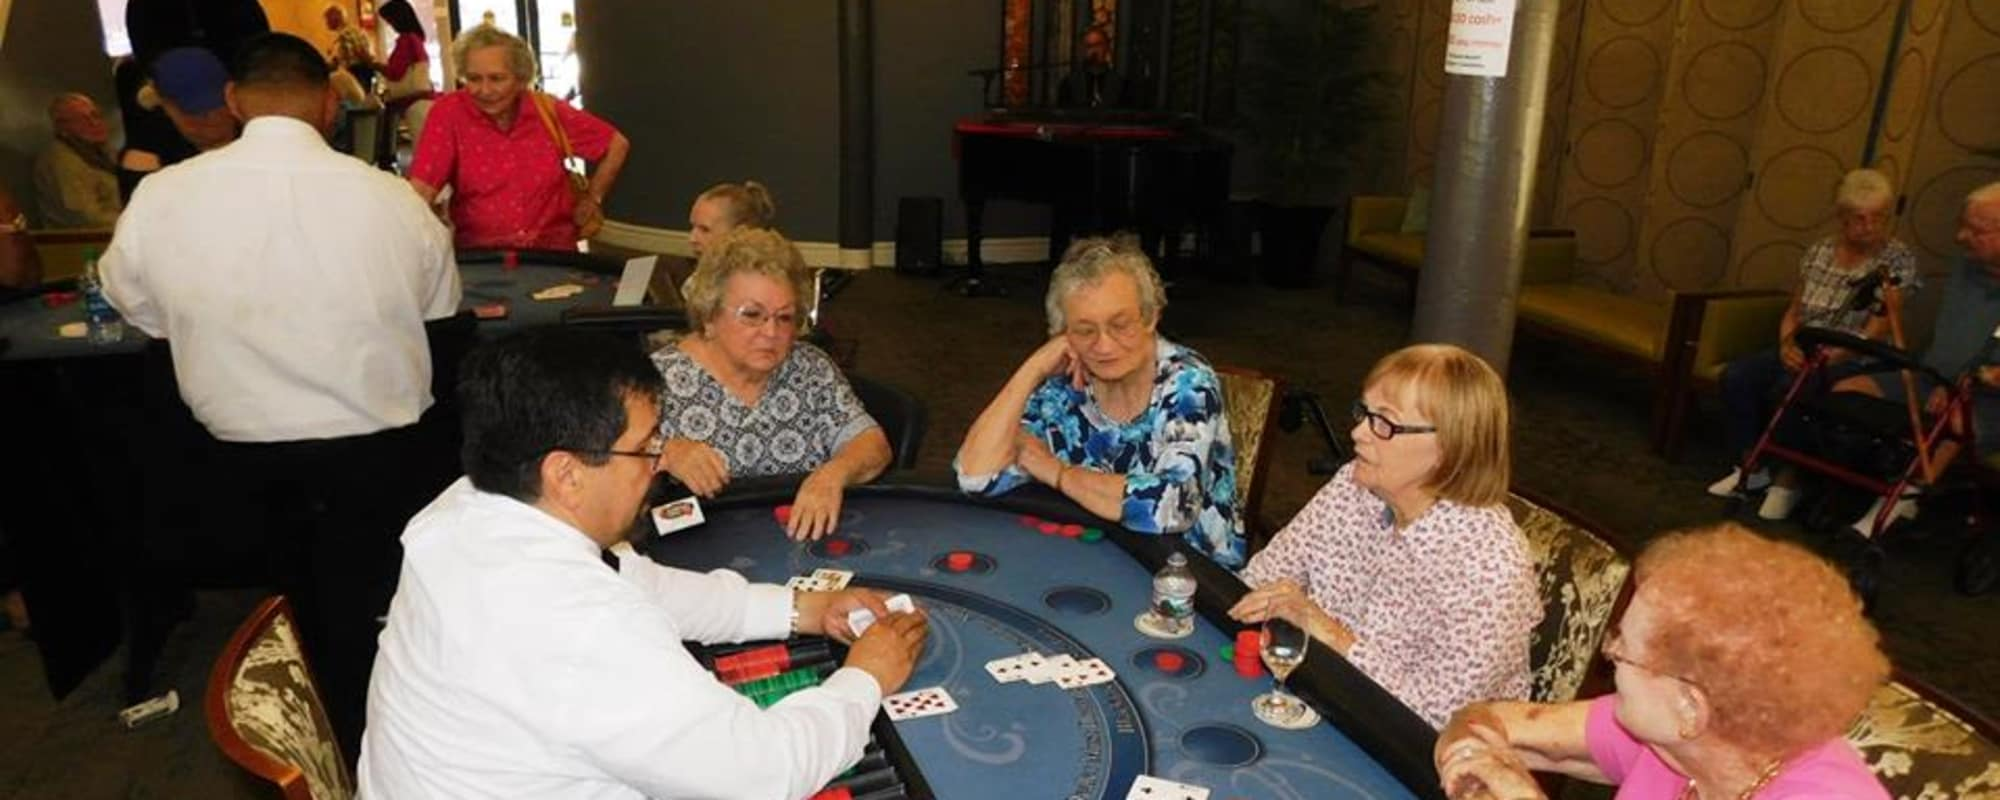 Seniors gambling at The Inn at Greenwood Village in Greenwood Village, Colorado